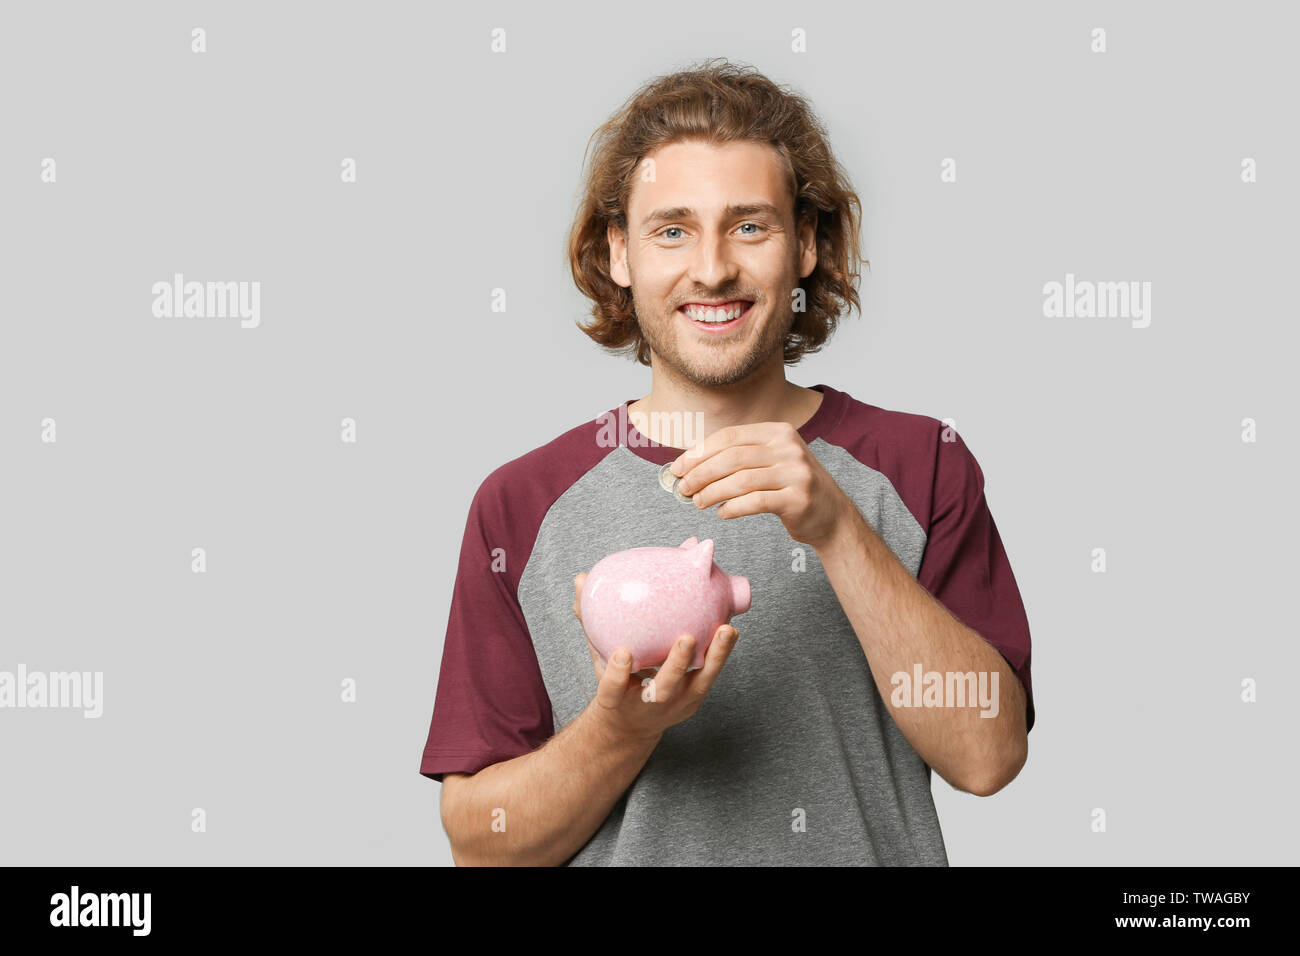 Handsome man with piggy bank on grey background - Stock Image